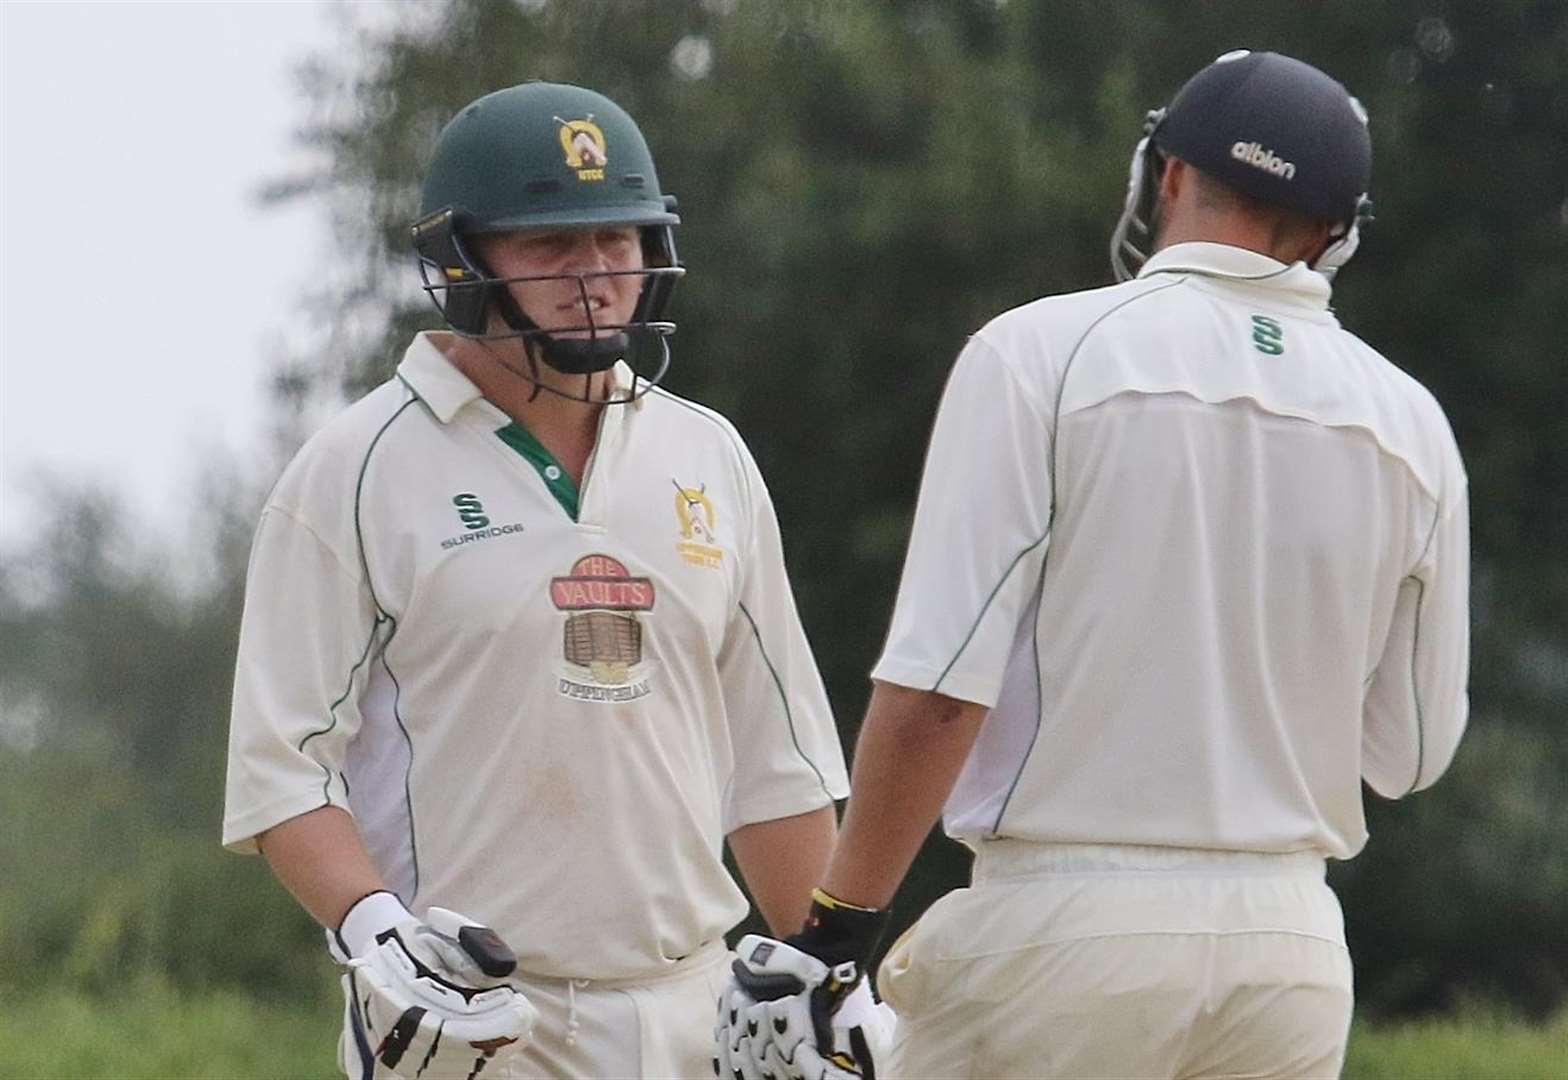 LEICESTERSHIRE LEAGUE: Duo's devastating bowling displays inspire Uppingham to vital